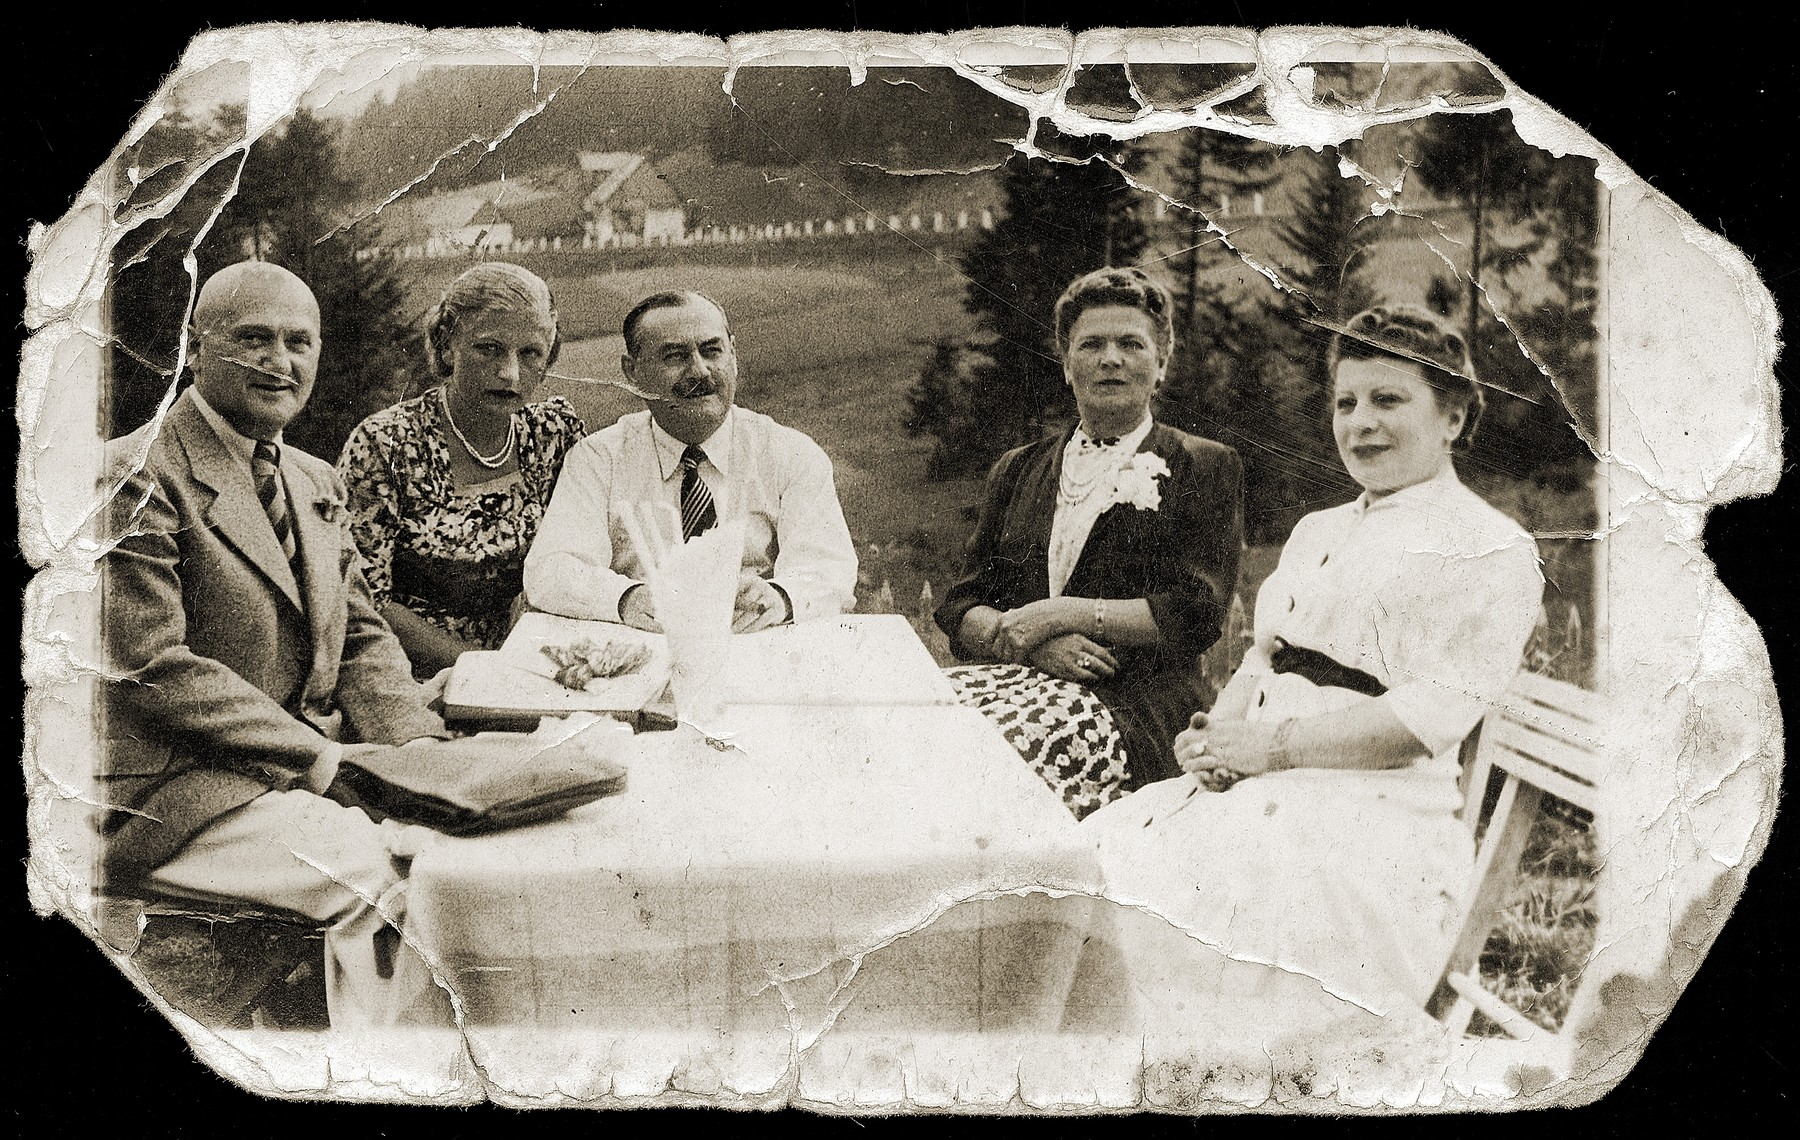 A group of friends sit outside around a table.  Pictured from left to right are: ? Pinkus, unknown, Simon Furstenberg, Helena (Goldminc) Furstenberg and Mania Pinkus.